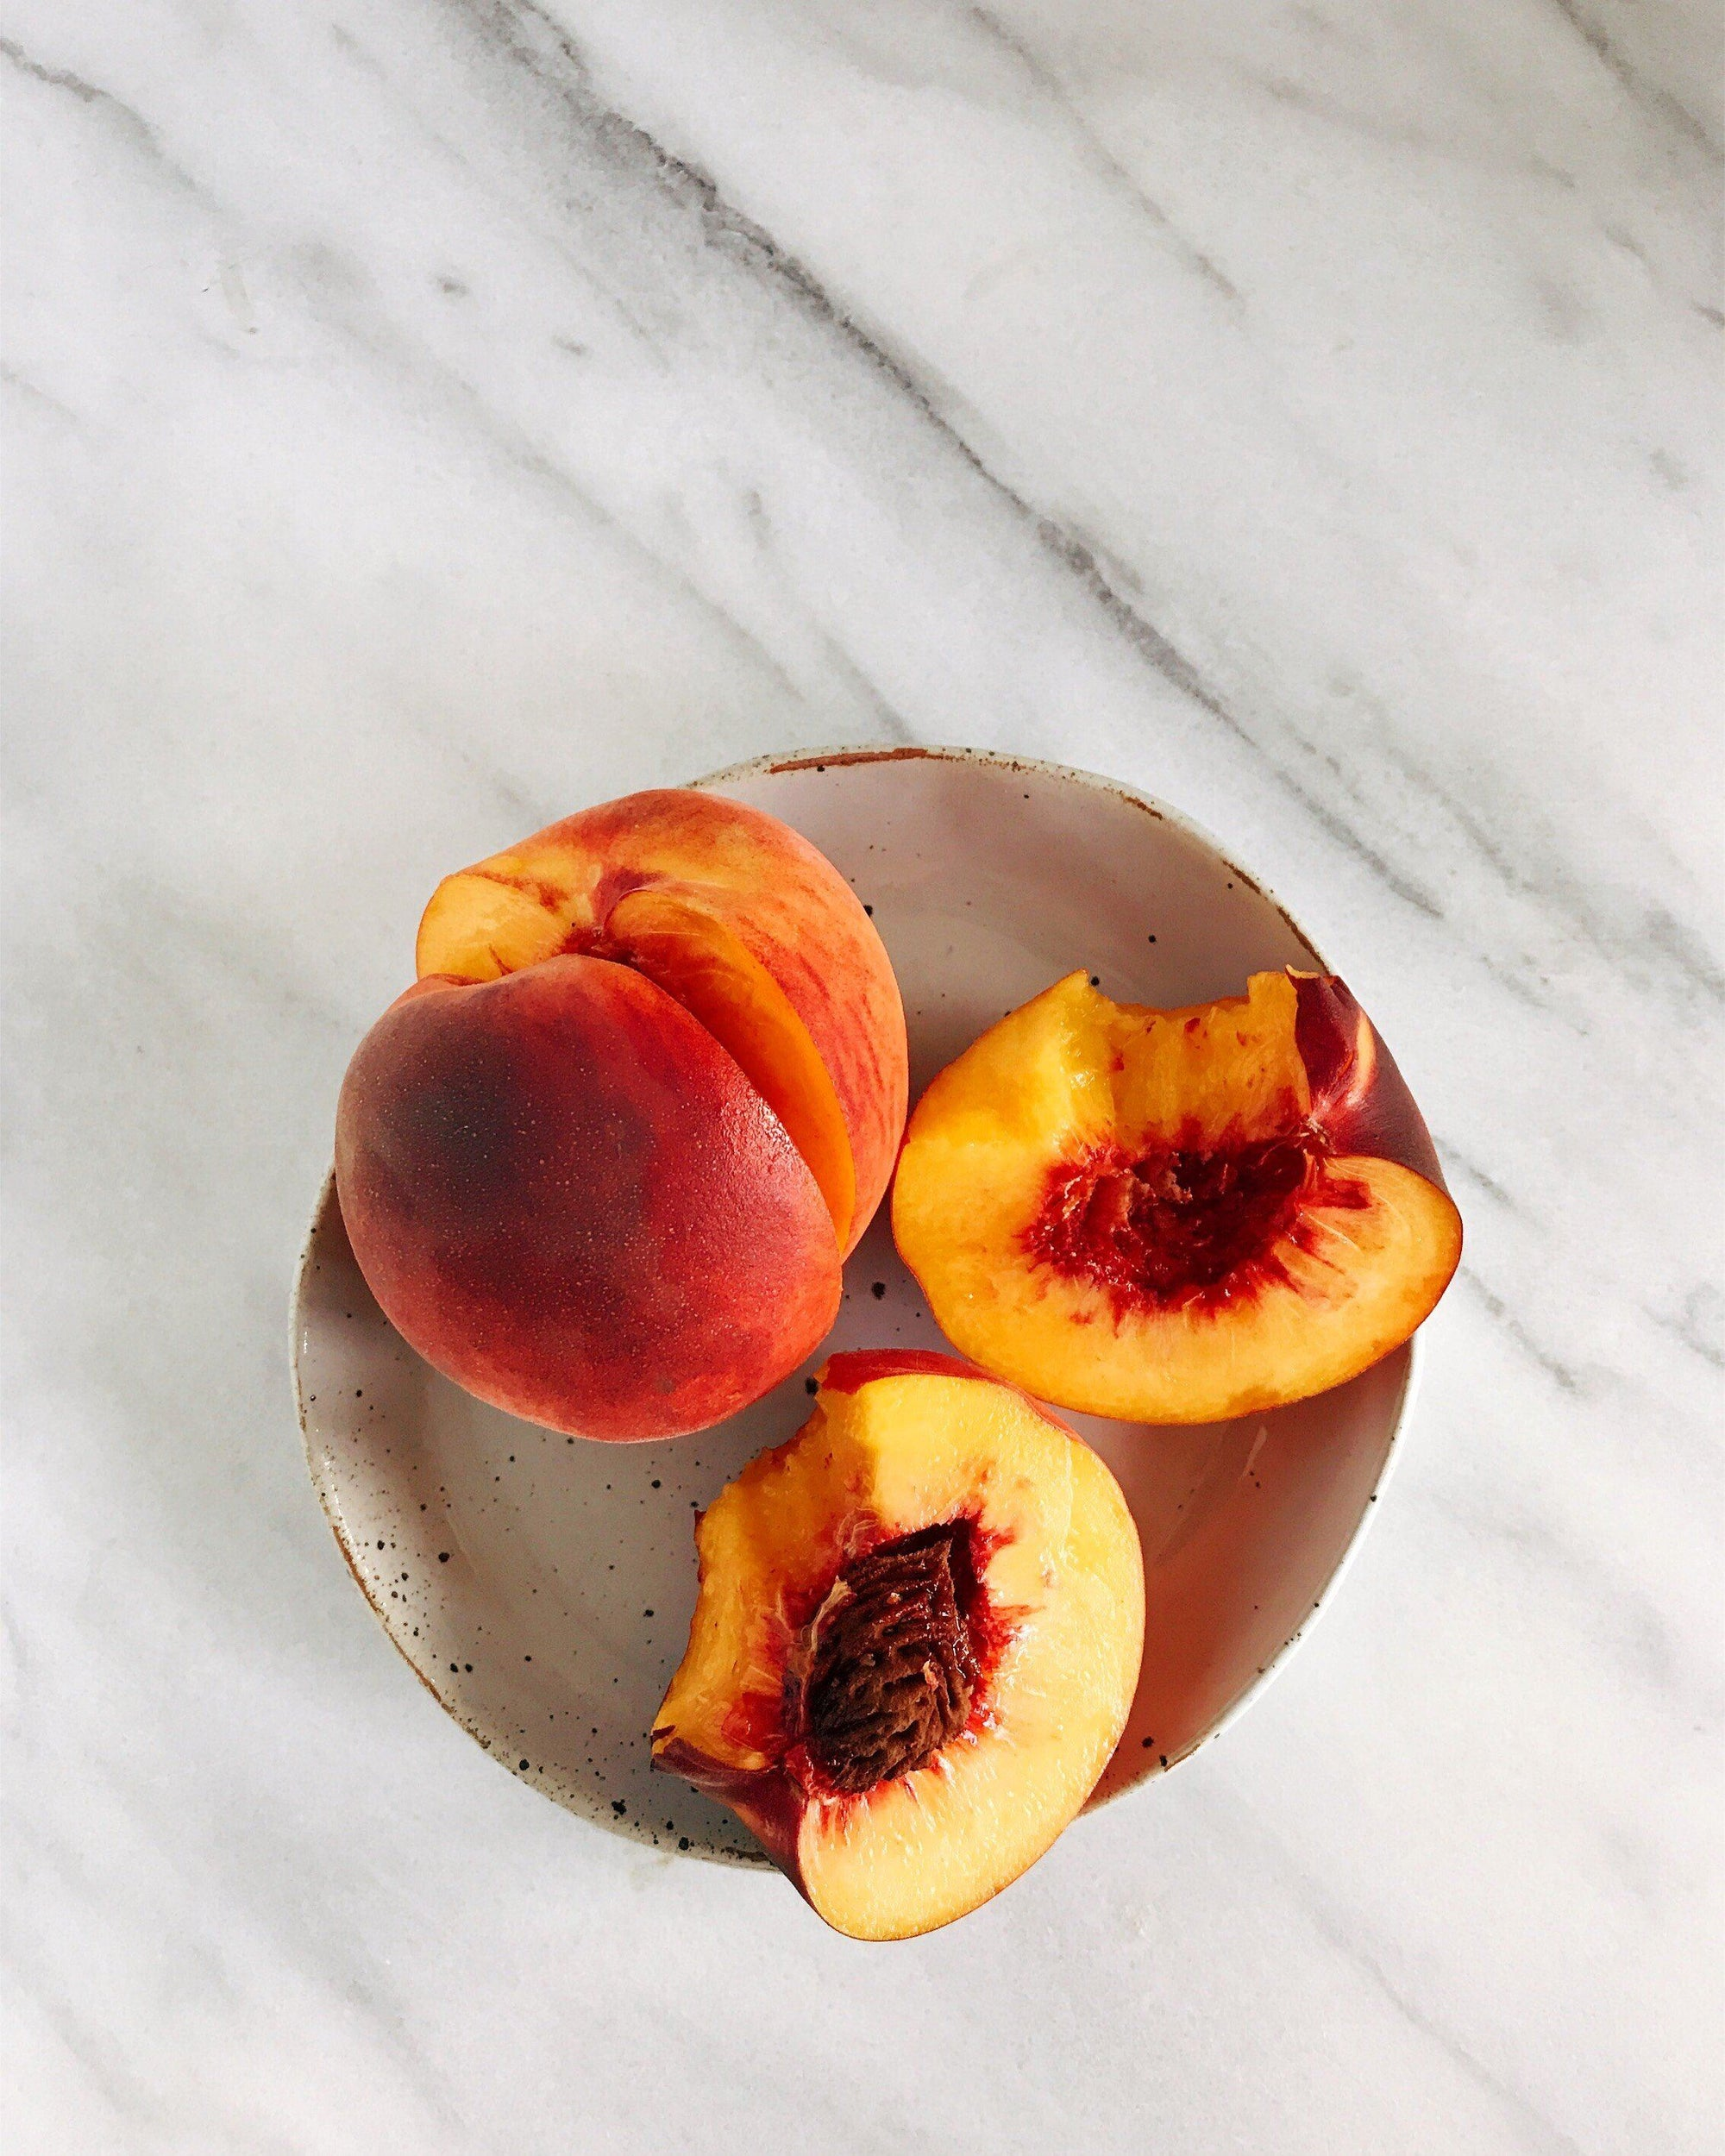 3 Signs of a Sweet and Juicy, Ready to Eat Peach